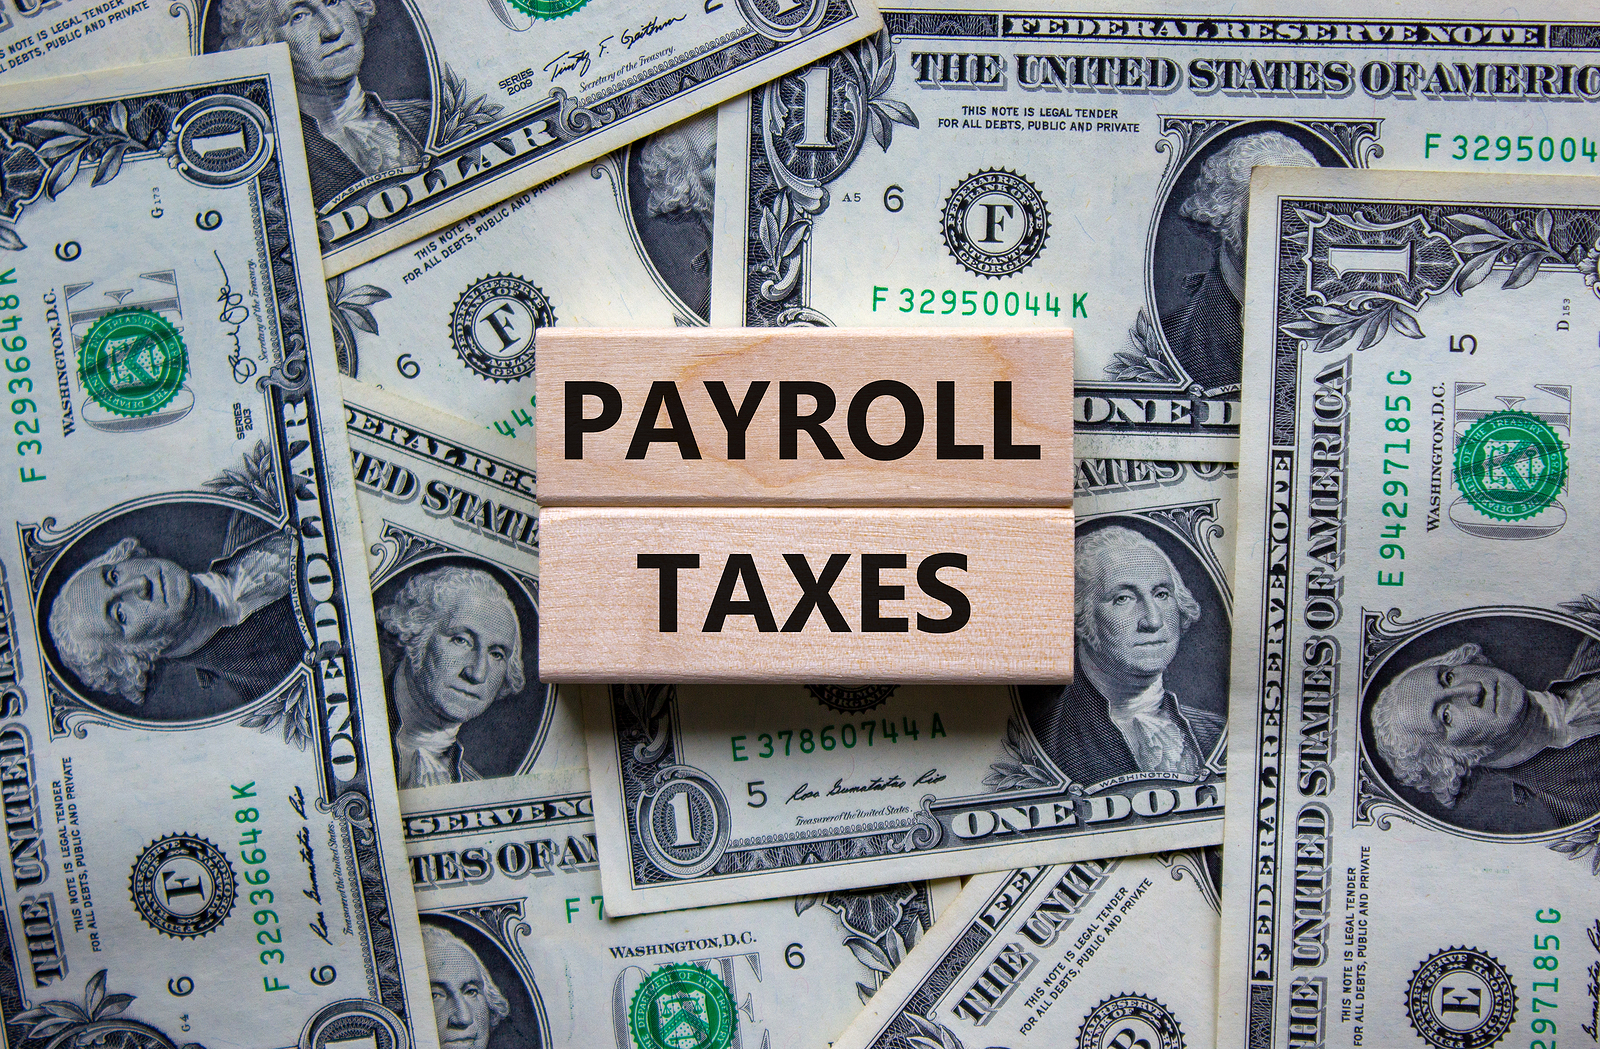 Changes to Employee Retention Tax Credits (ERTC) for Payroll Taxes